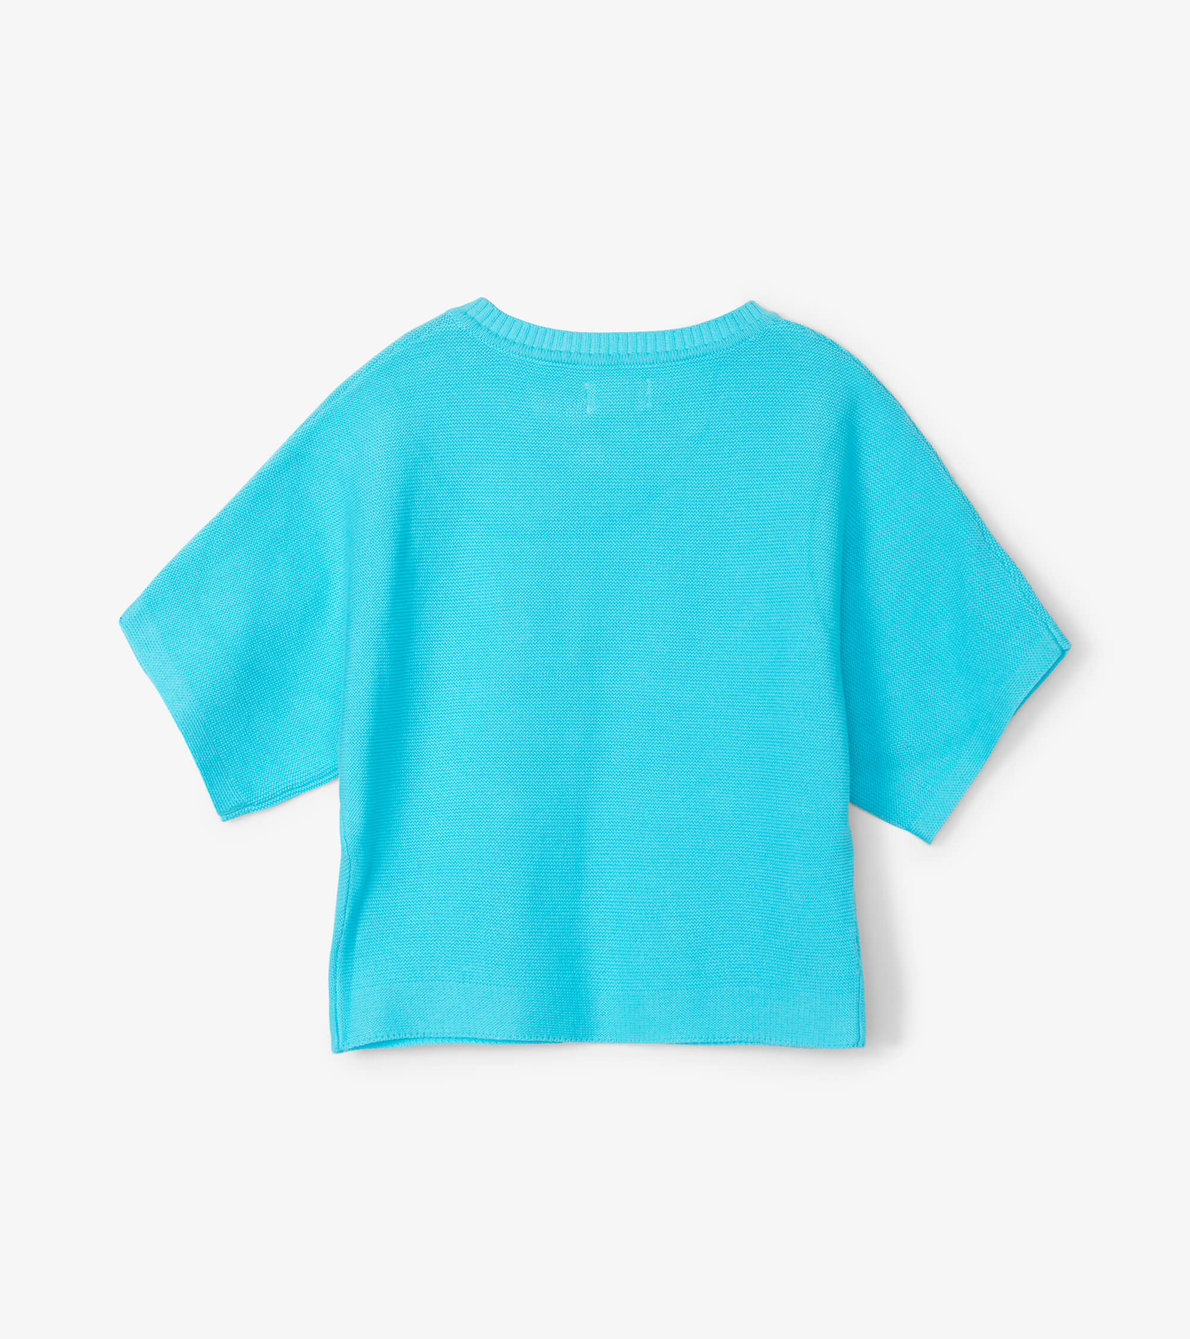 View larger image of Summer Pom Poms Swing Sweater